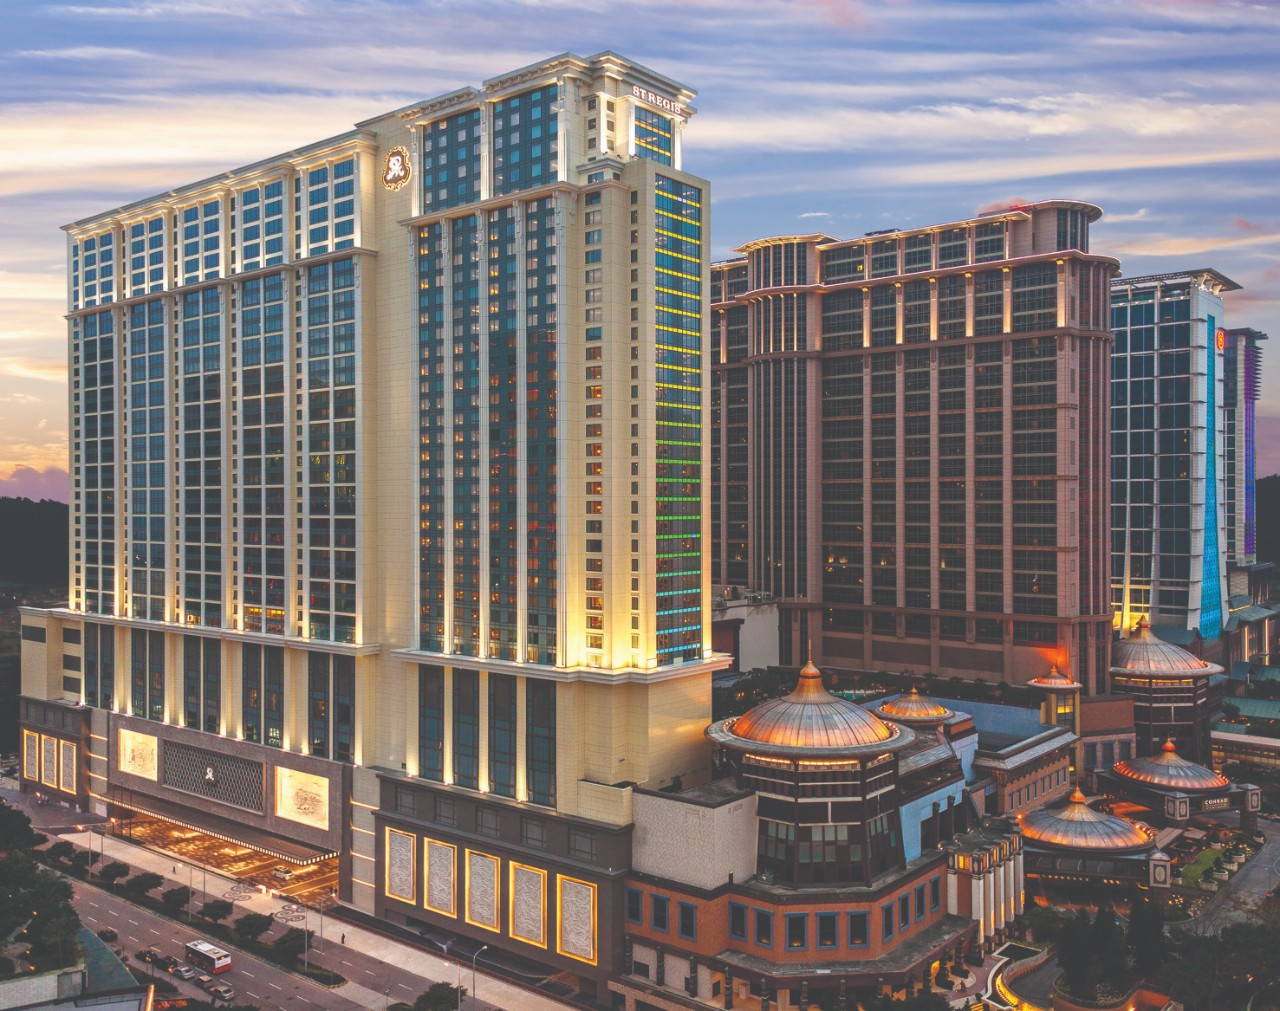 The Gold List 2020 Best International Hotel —  The St. Regis Macao, Cotai Strip